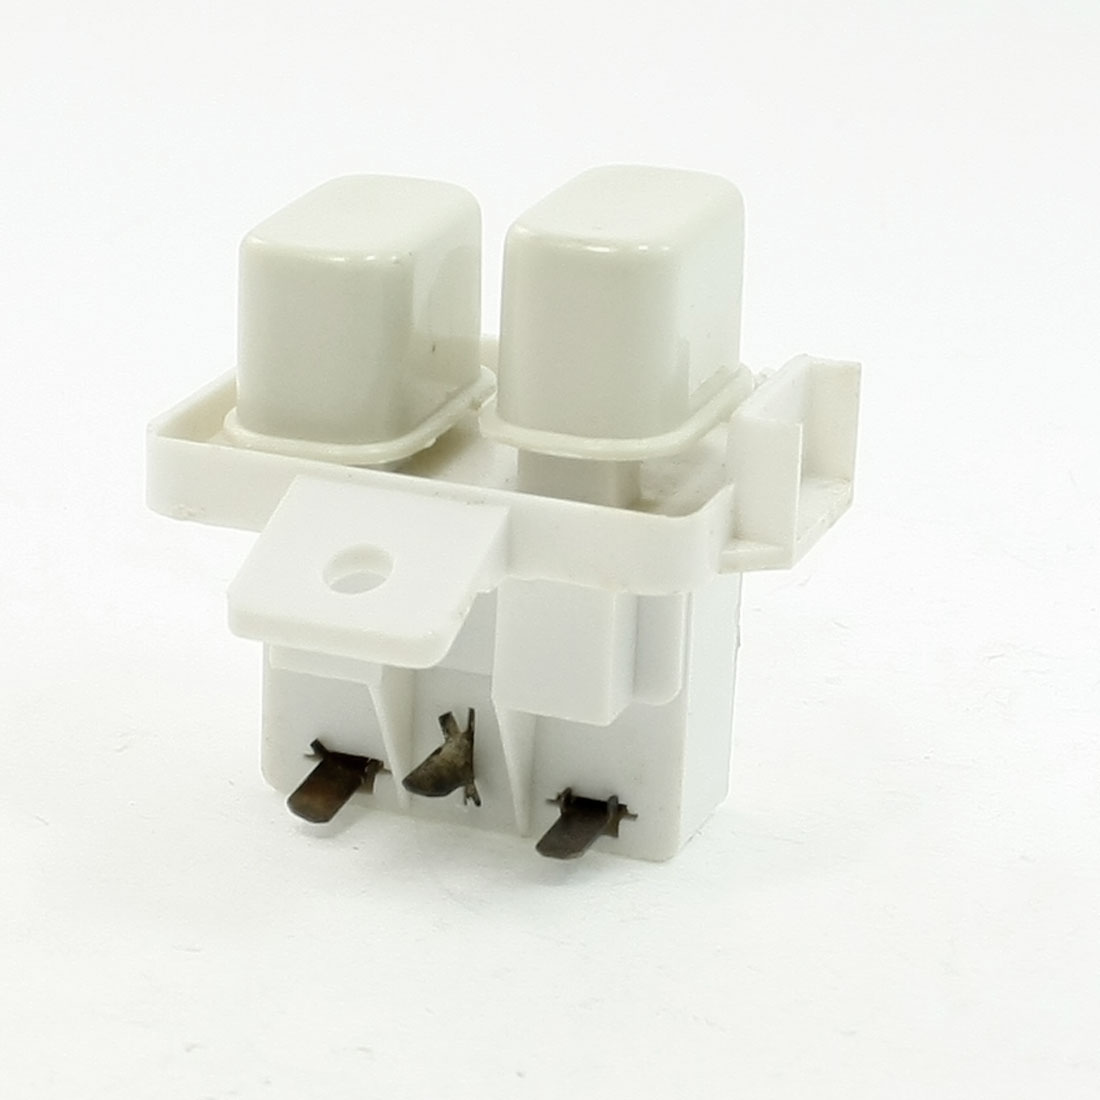 AC 250V 25A 3P Lug Knob Latching Power Switch for Welli Washing Machine